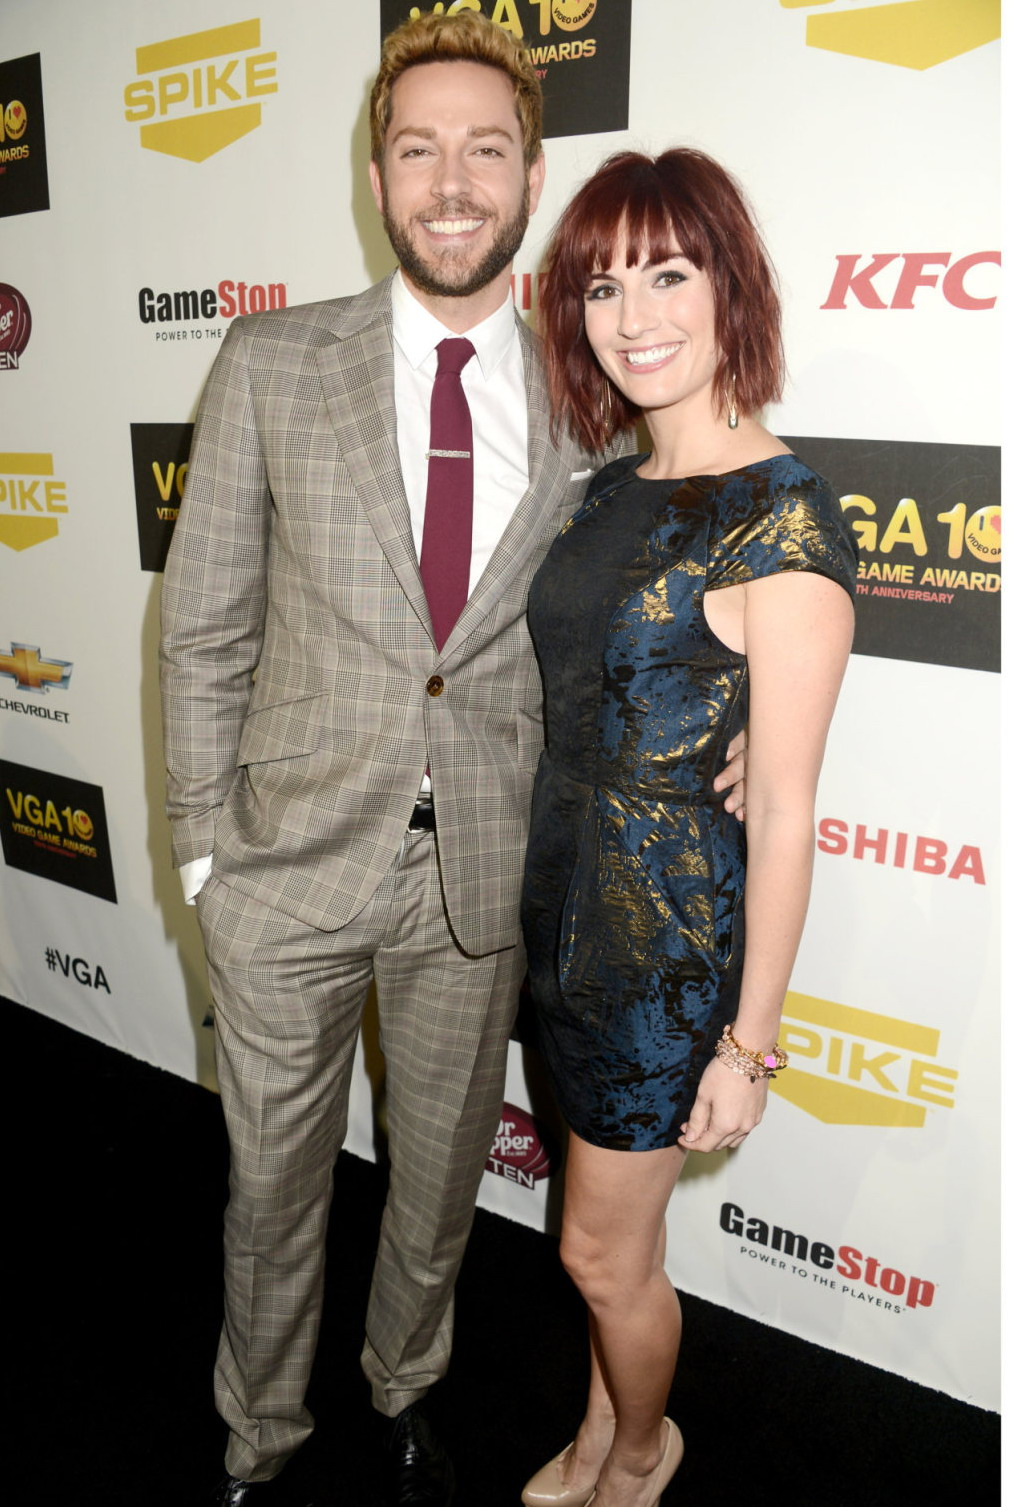 Alison Haislip Spike TVs Annual Video Game Awards in Culver City